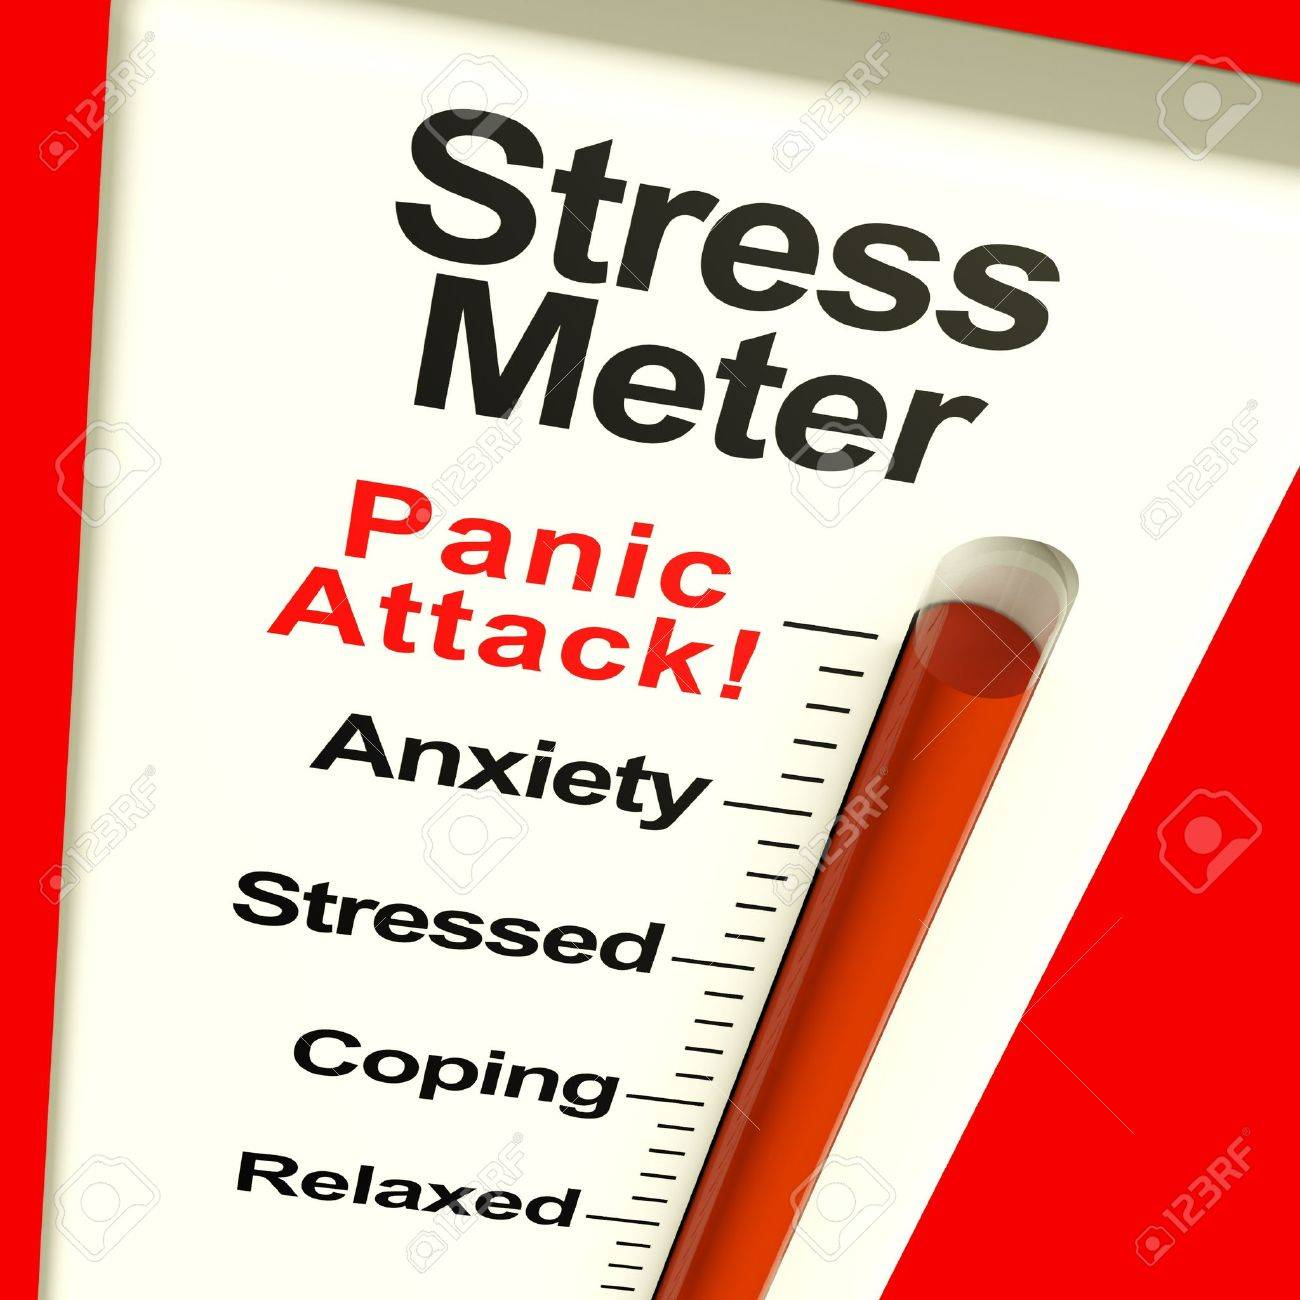 Stress Meter Showing Panic Attack From Stress And Worry - 11947983